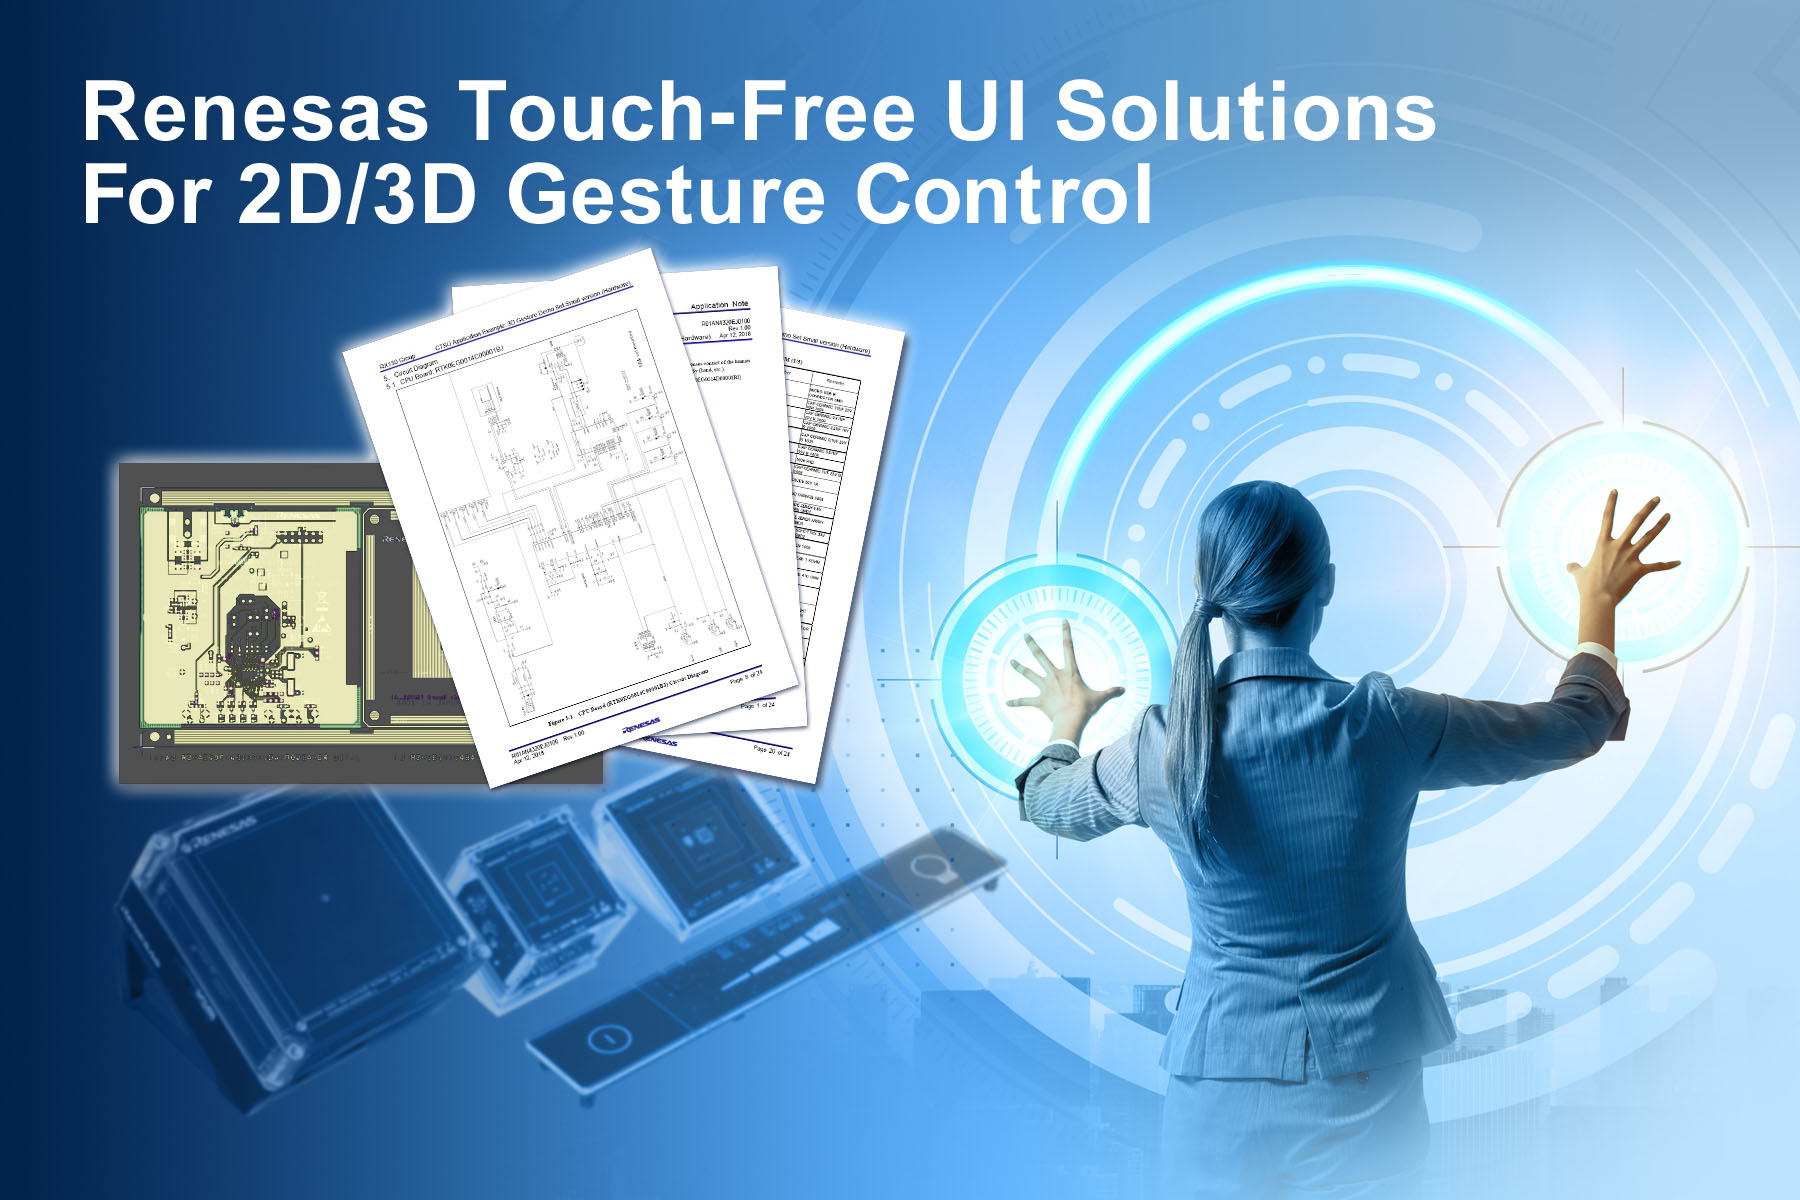 Touch-Free UI Solutions with Capacitive Microcontrollers